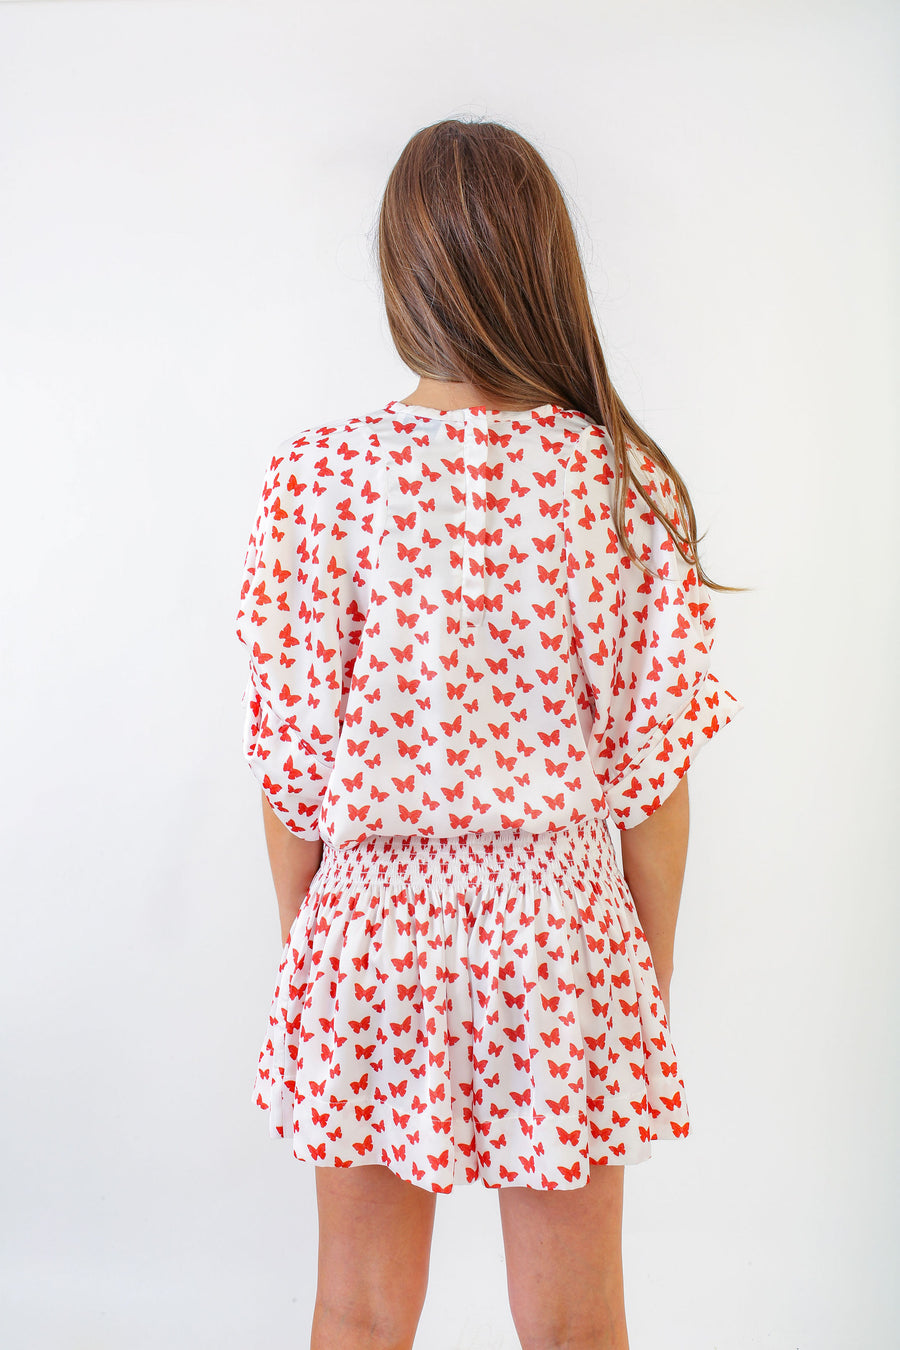 ERICA SKIRT RED BUTTERFLY PRINT *LIMITED*EDITION*